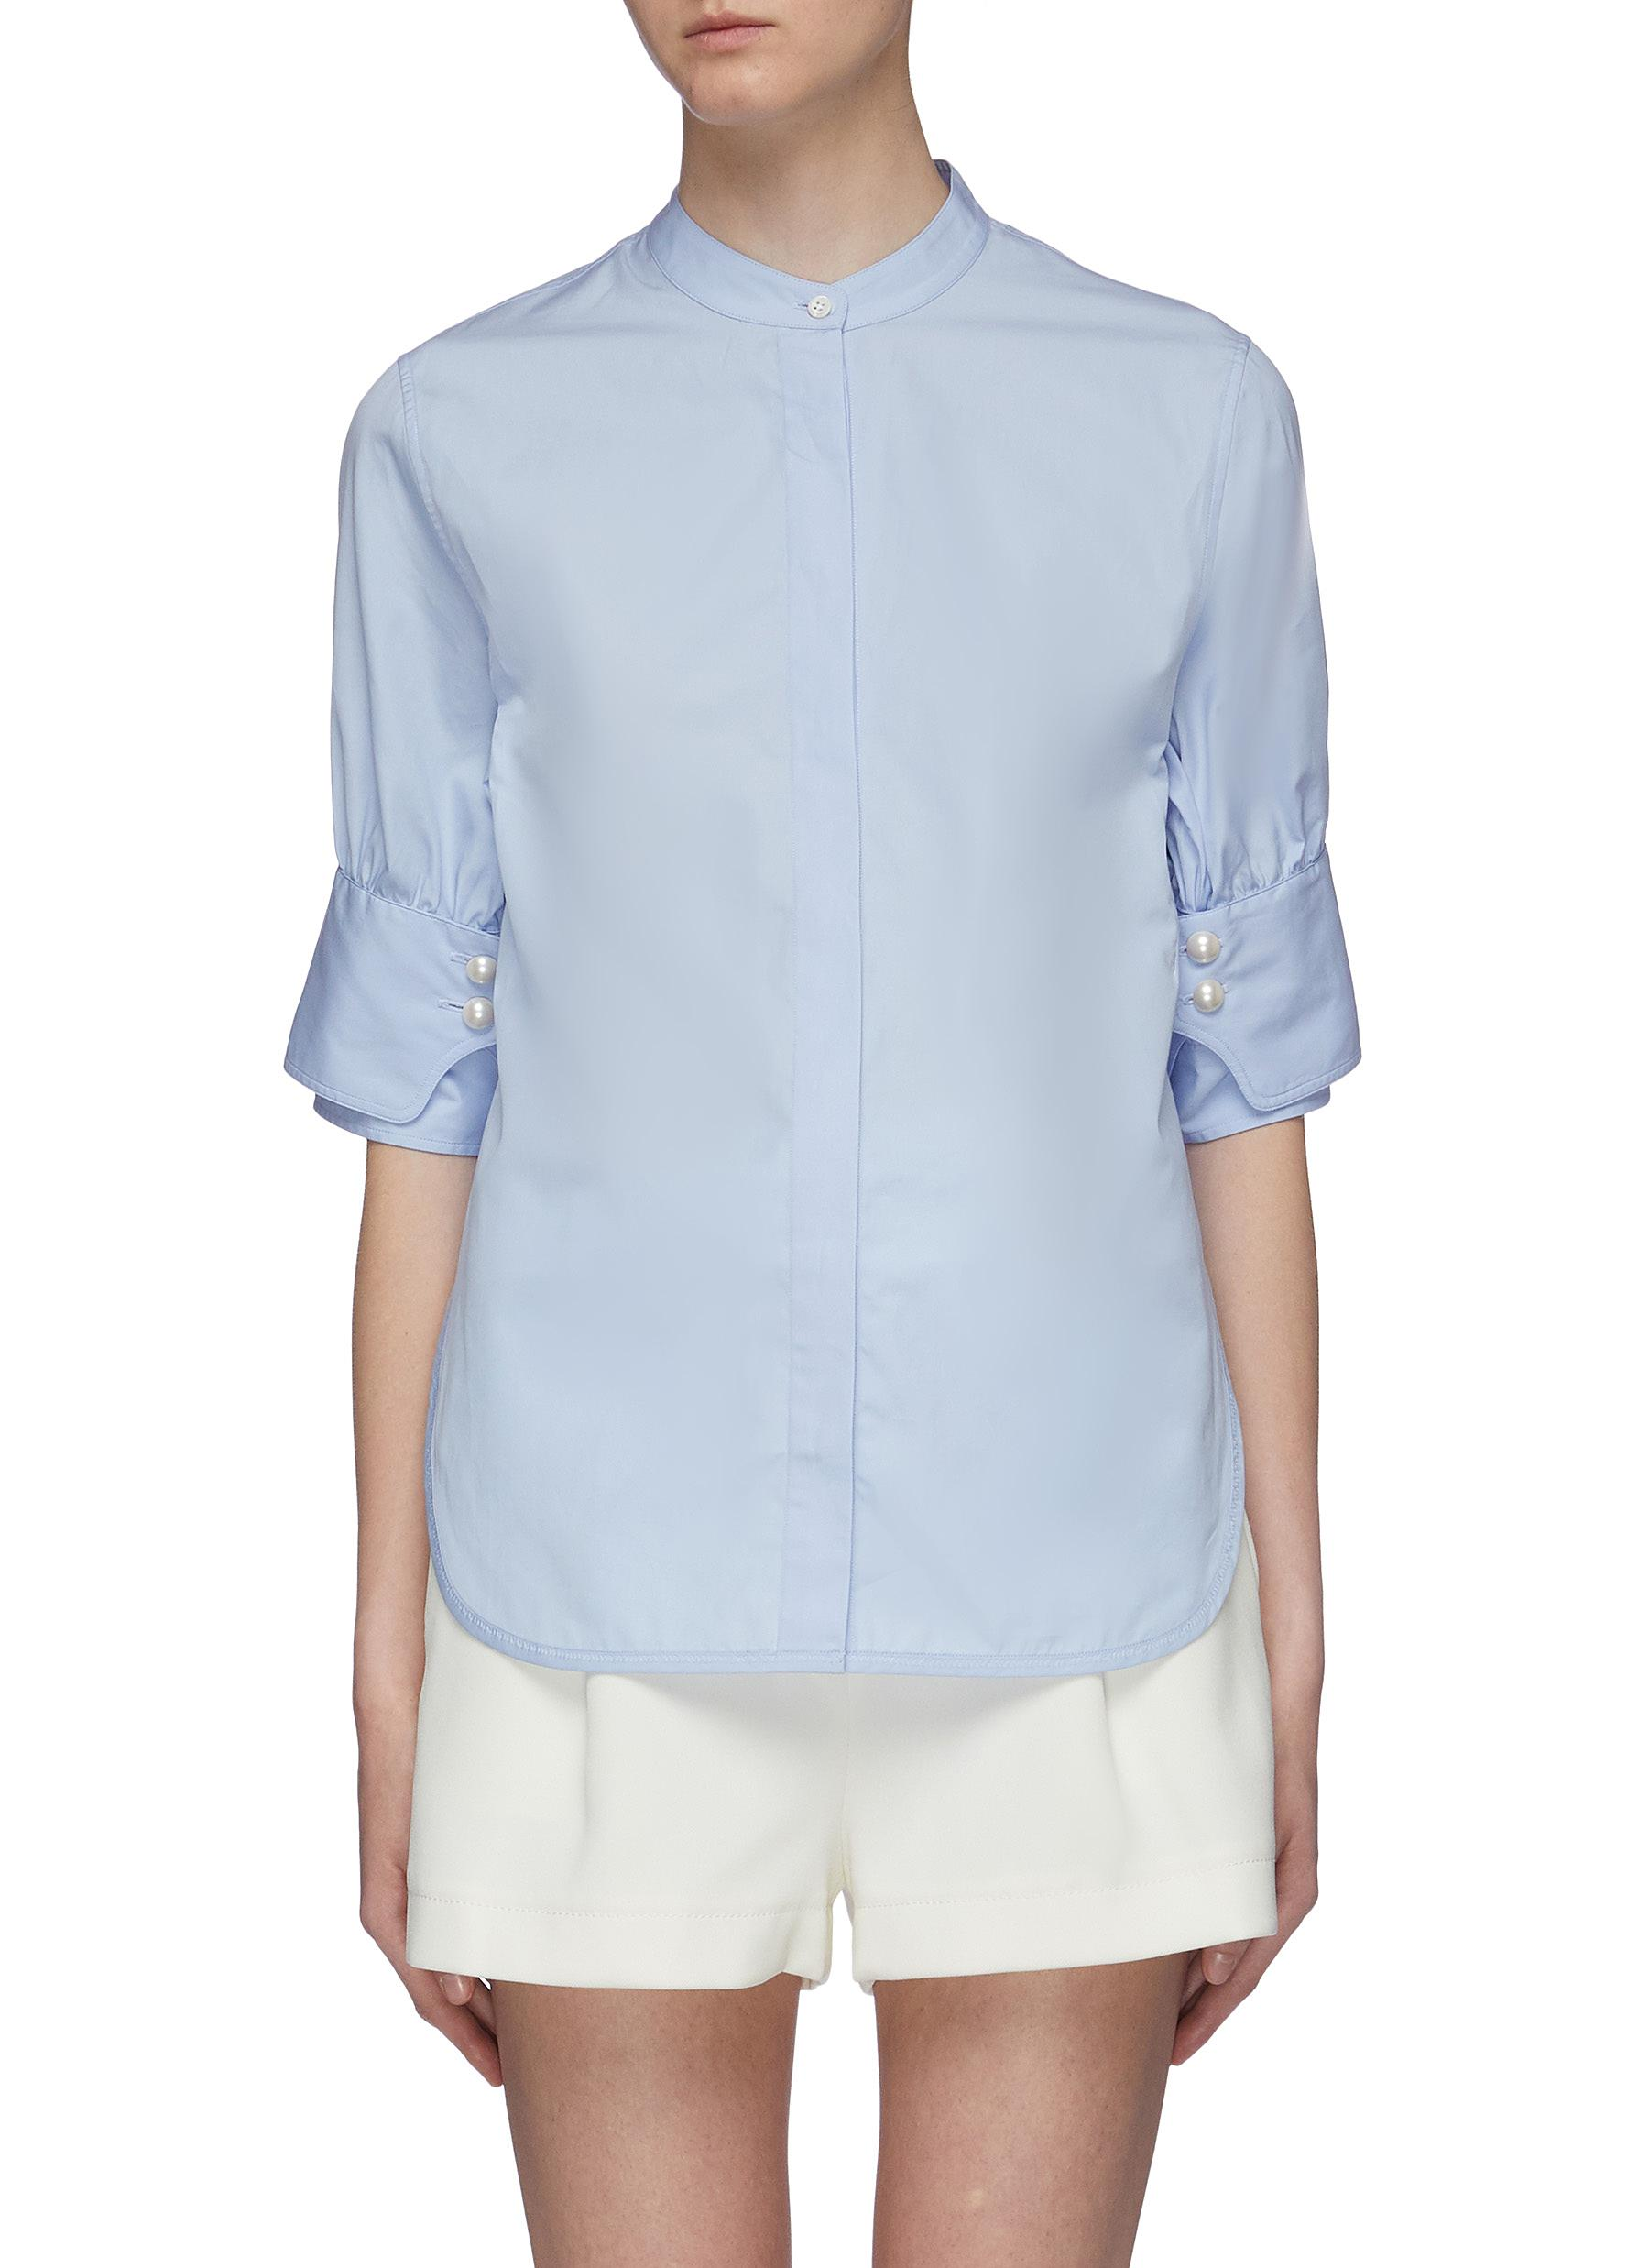 Belted back faux pearl cuff short sleeve shirt by 3.1 Phillip Lim